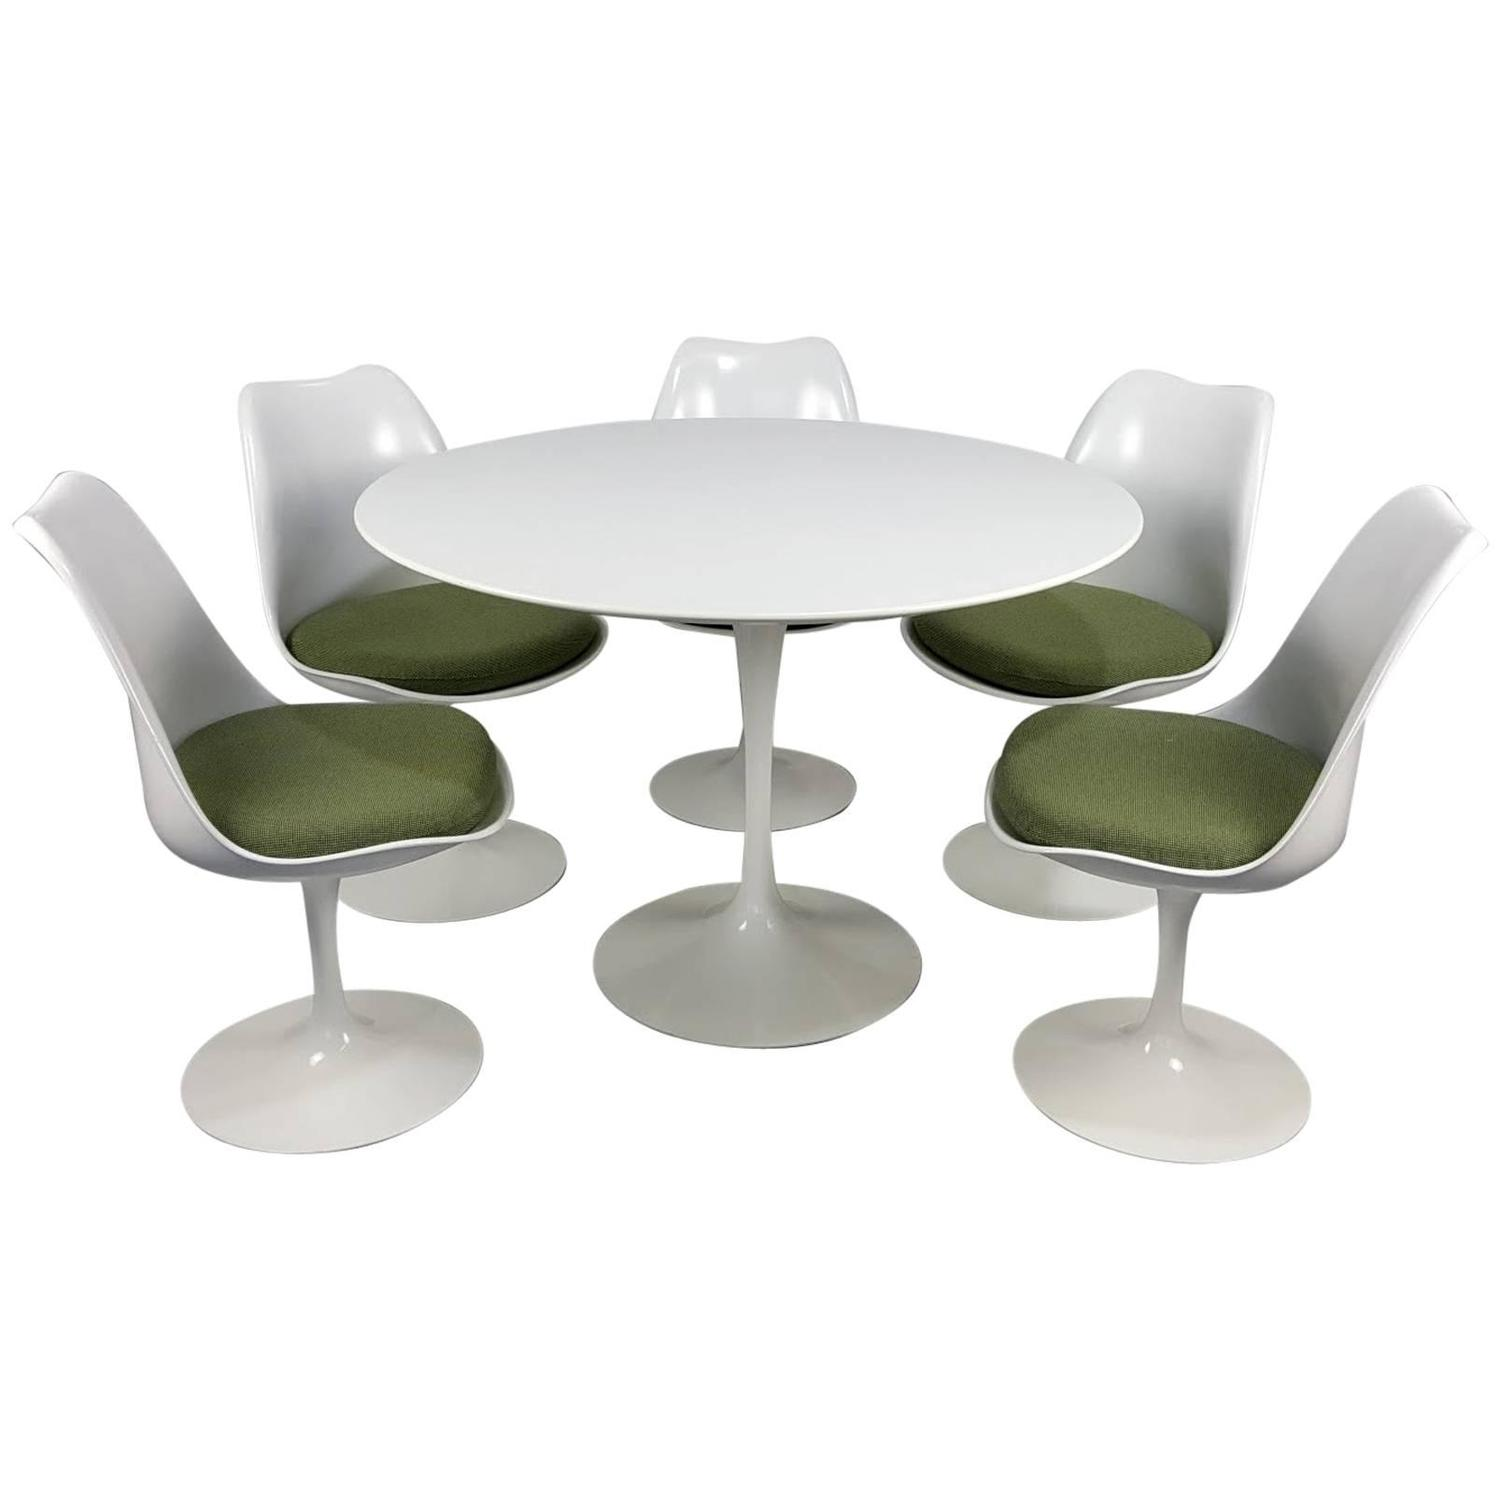 Saarinen Knoll Table Eero Saarinen Tulip Table And Chairs By Knoll Newer Production